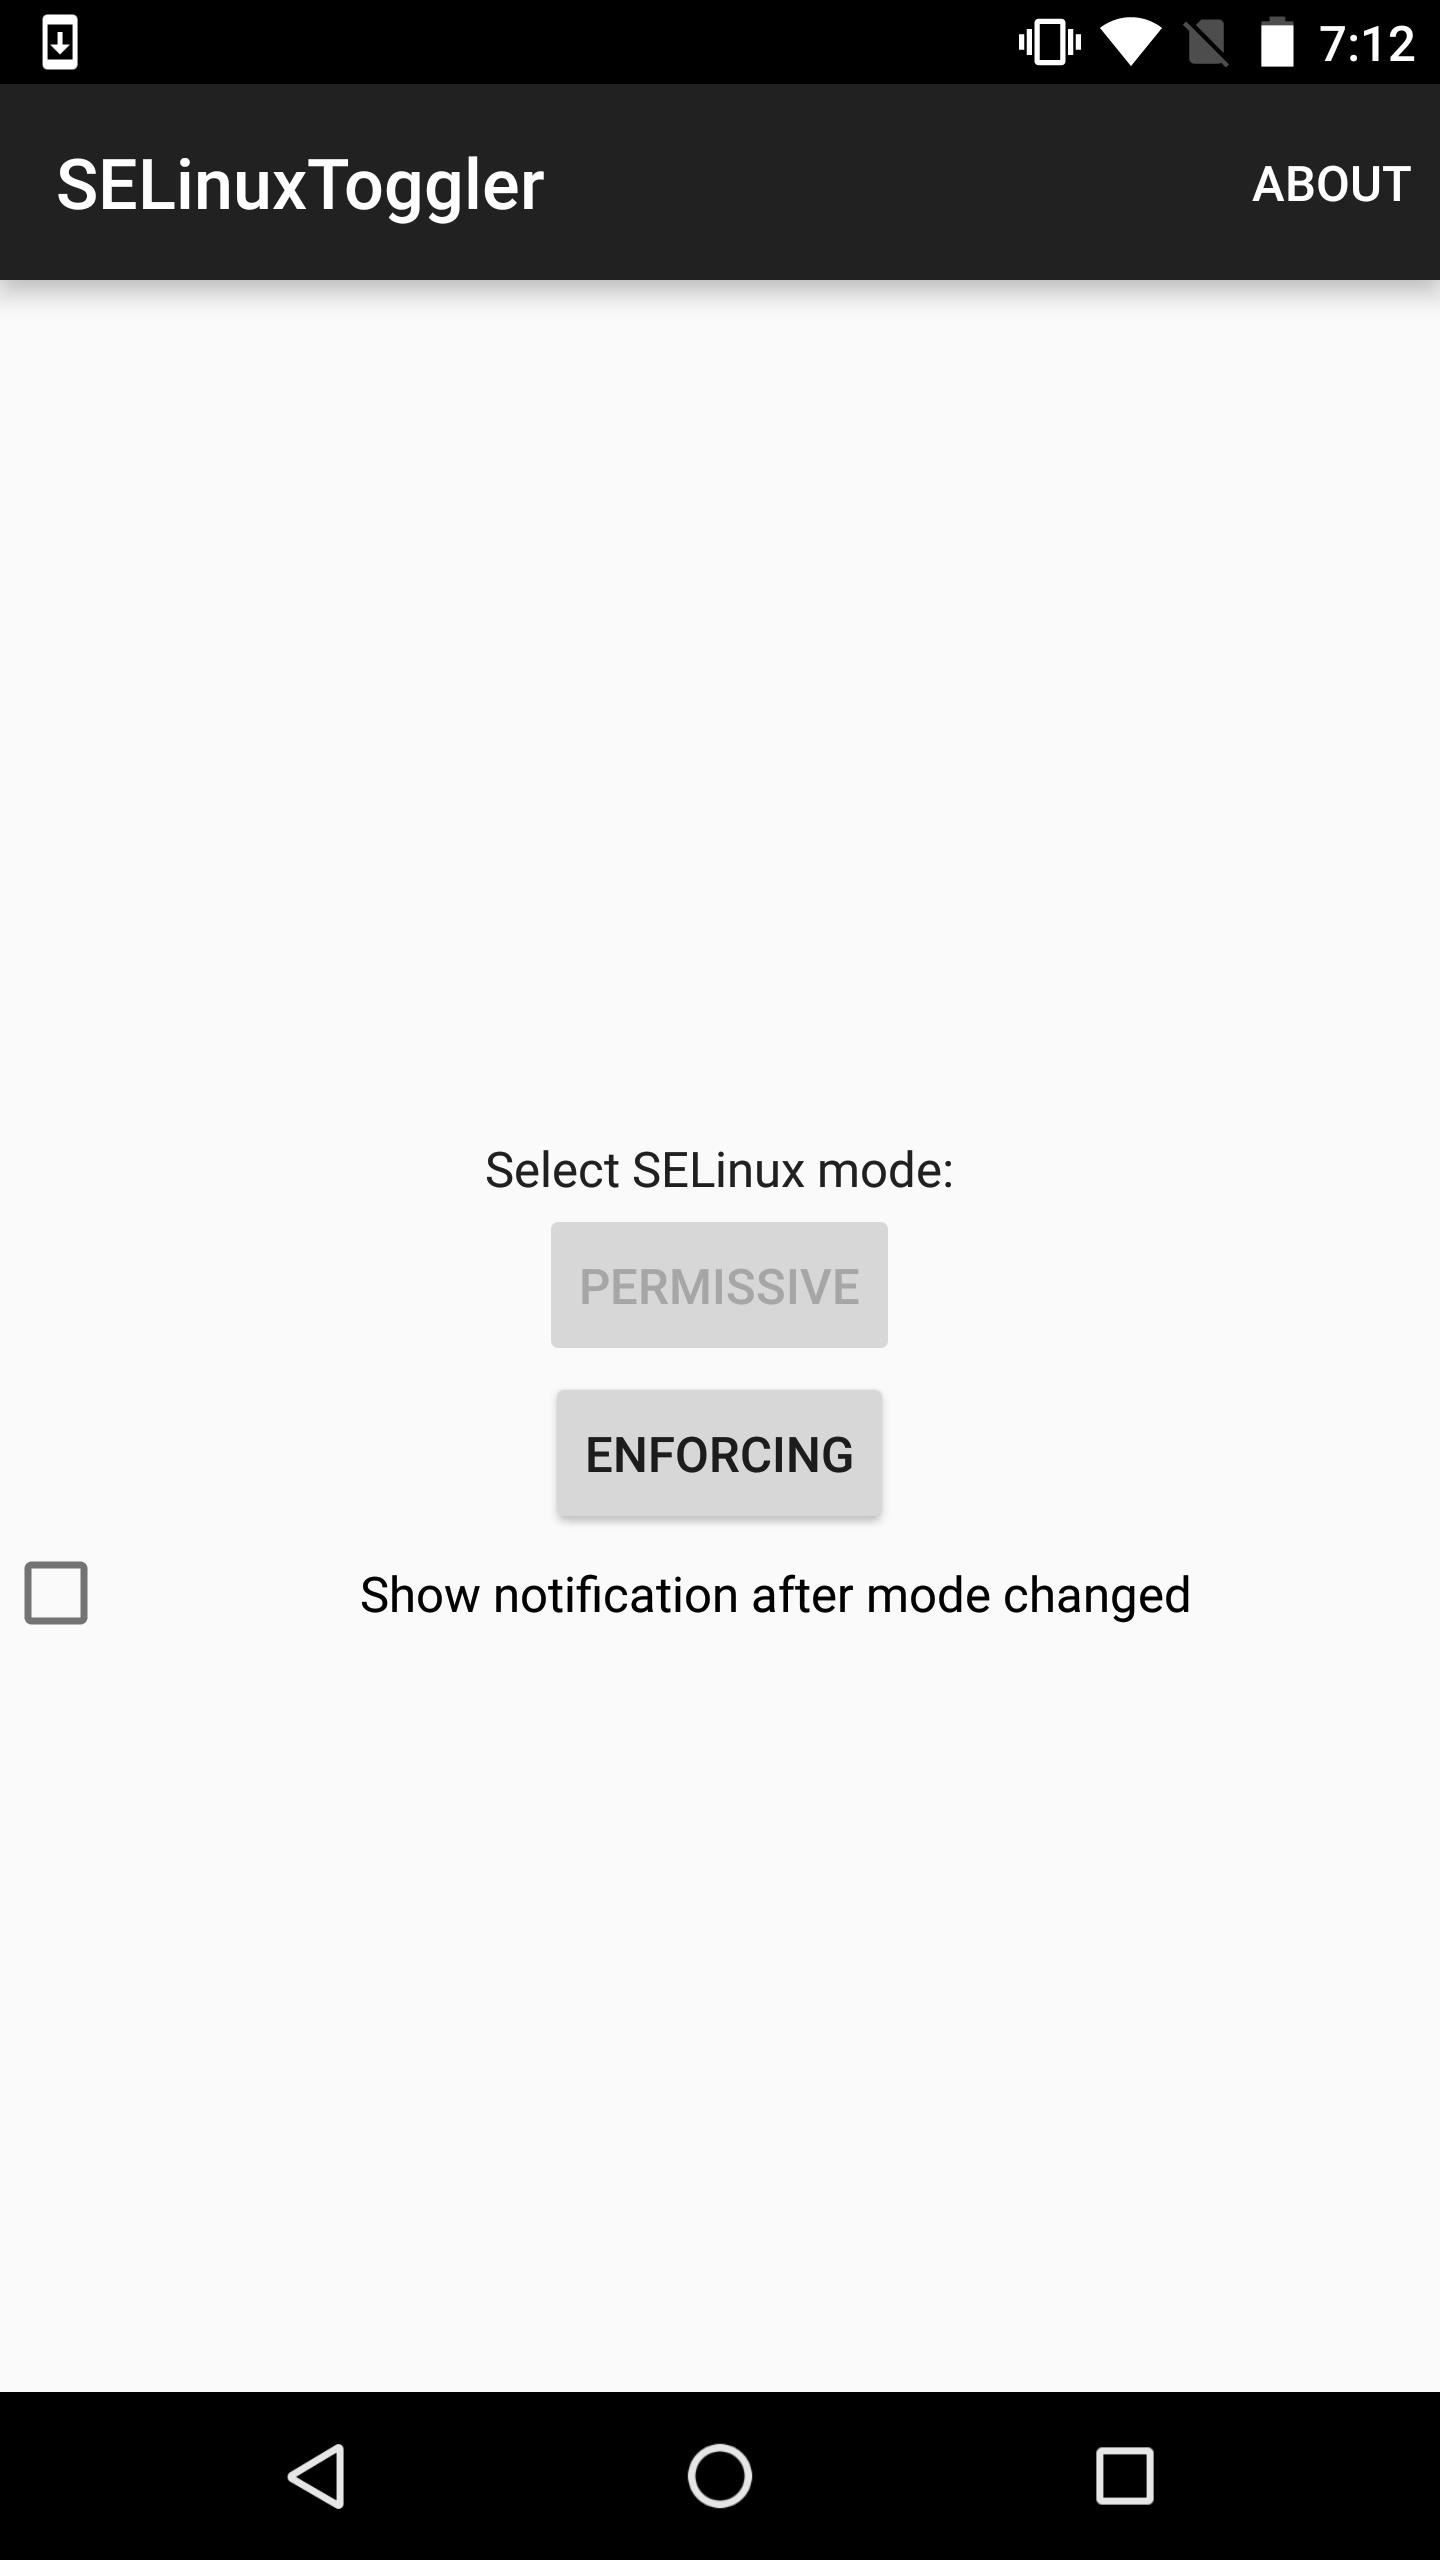 How to Easily Change Your SELinux Mode with This One-Tap App